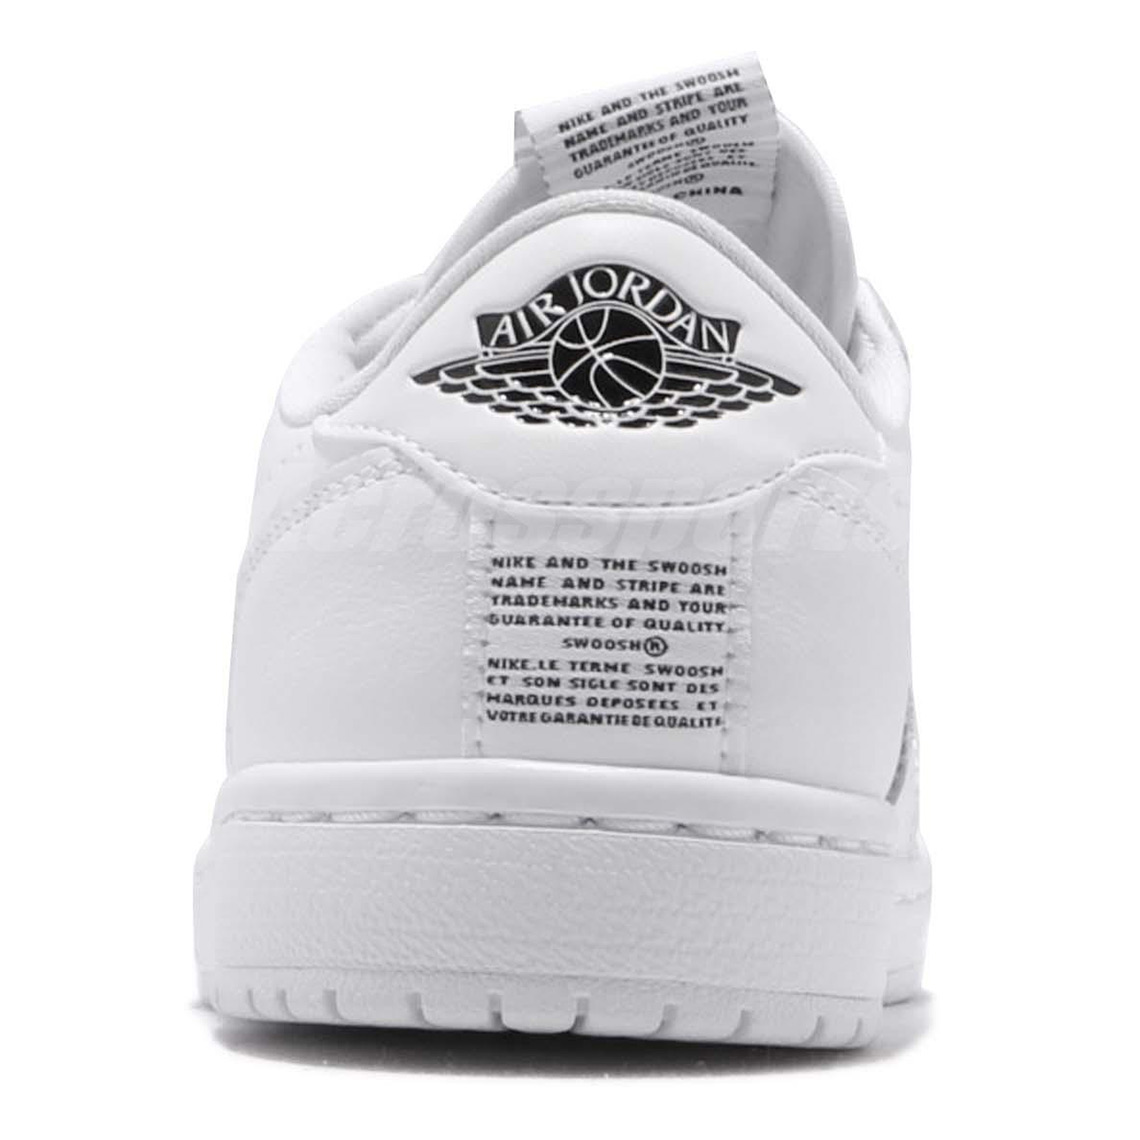 premium selection f4f71 a8de5 Air Jordan 1 Retro Low Slip  115. Style Code  AV3918-100. Where to Buy.  eBay Available. Advertisement. show comments